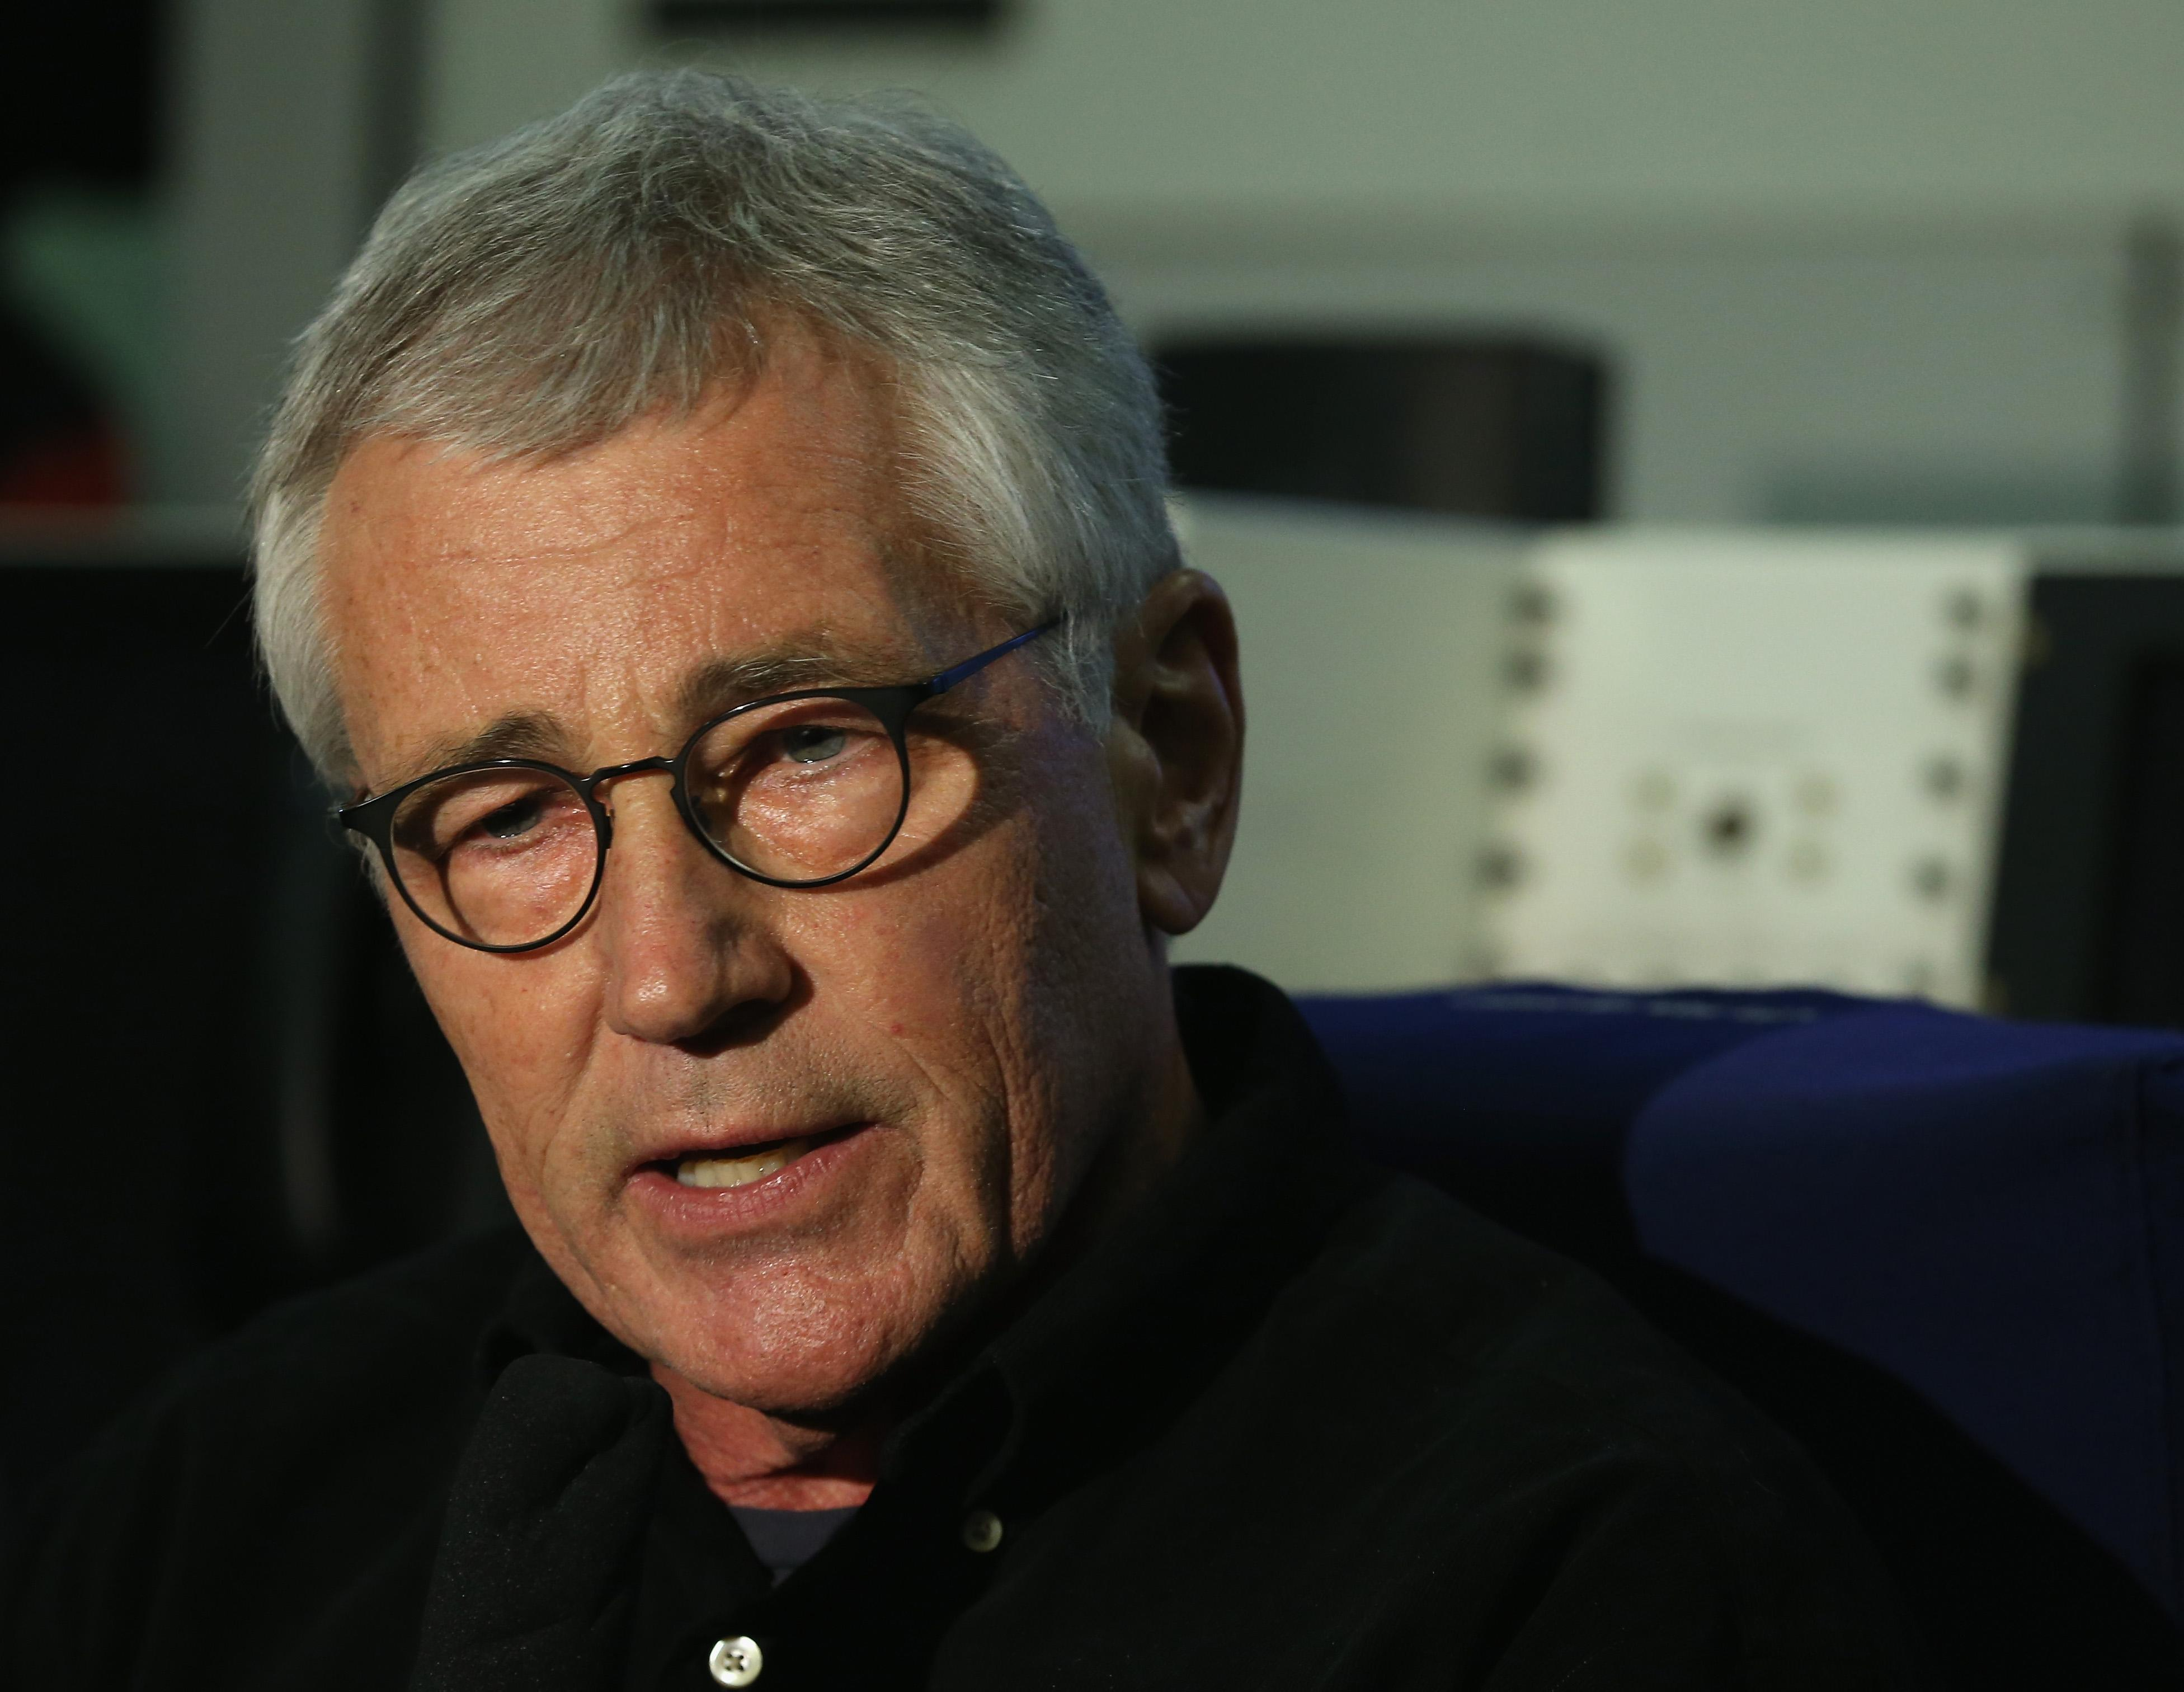 US Secretary of Defense Chuck Hagel speaks to the media about his trip to Afghanistan on board his plane on December 5, 2014 (AFP Photo/Mark Wilson)